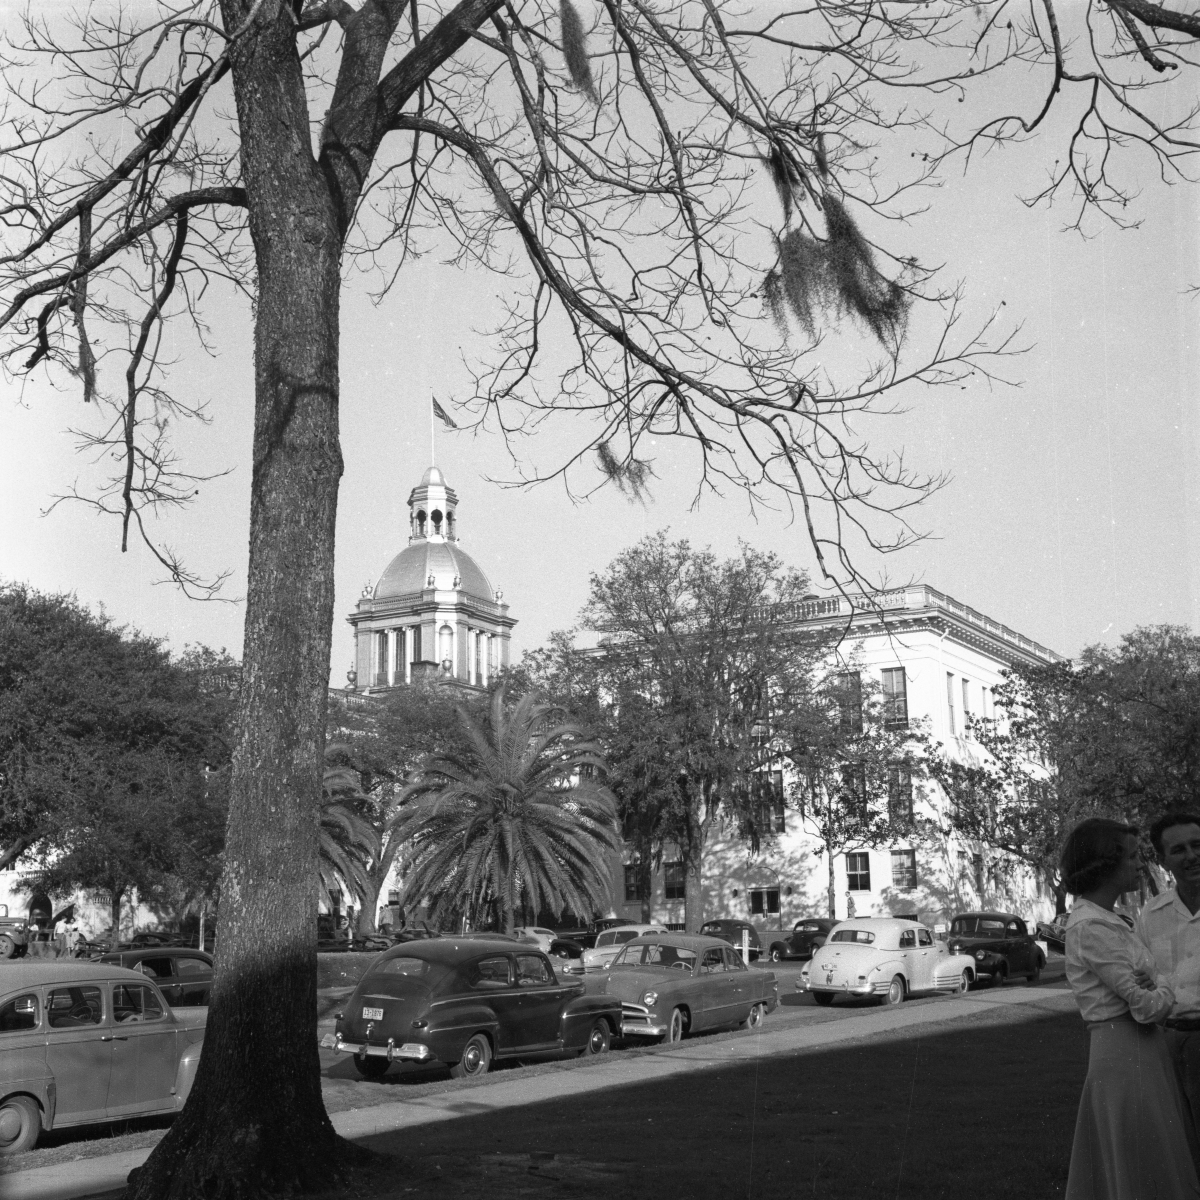 Two girls across the street from the old Florida State Capitol building.